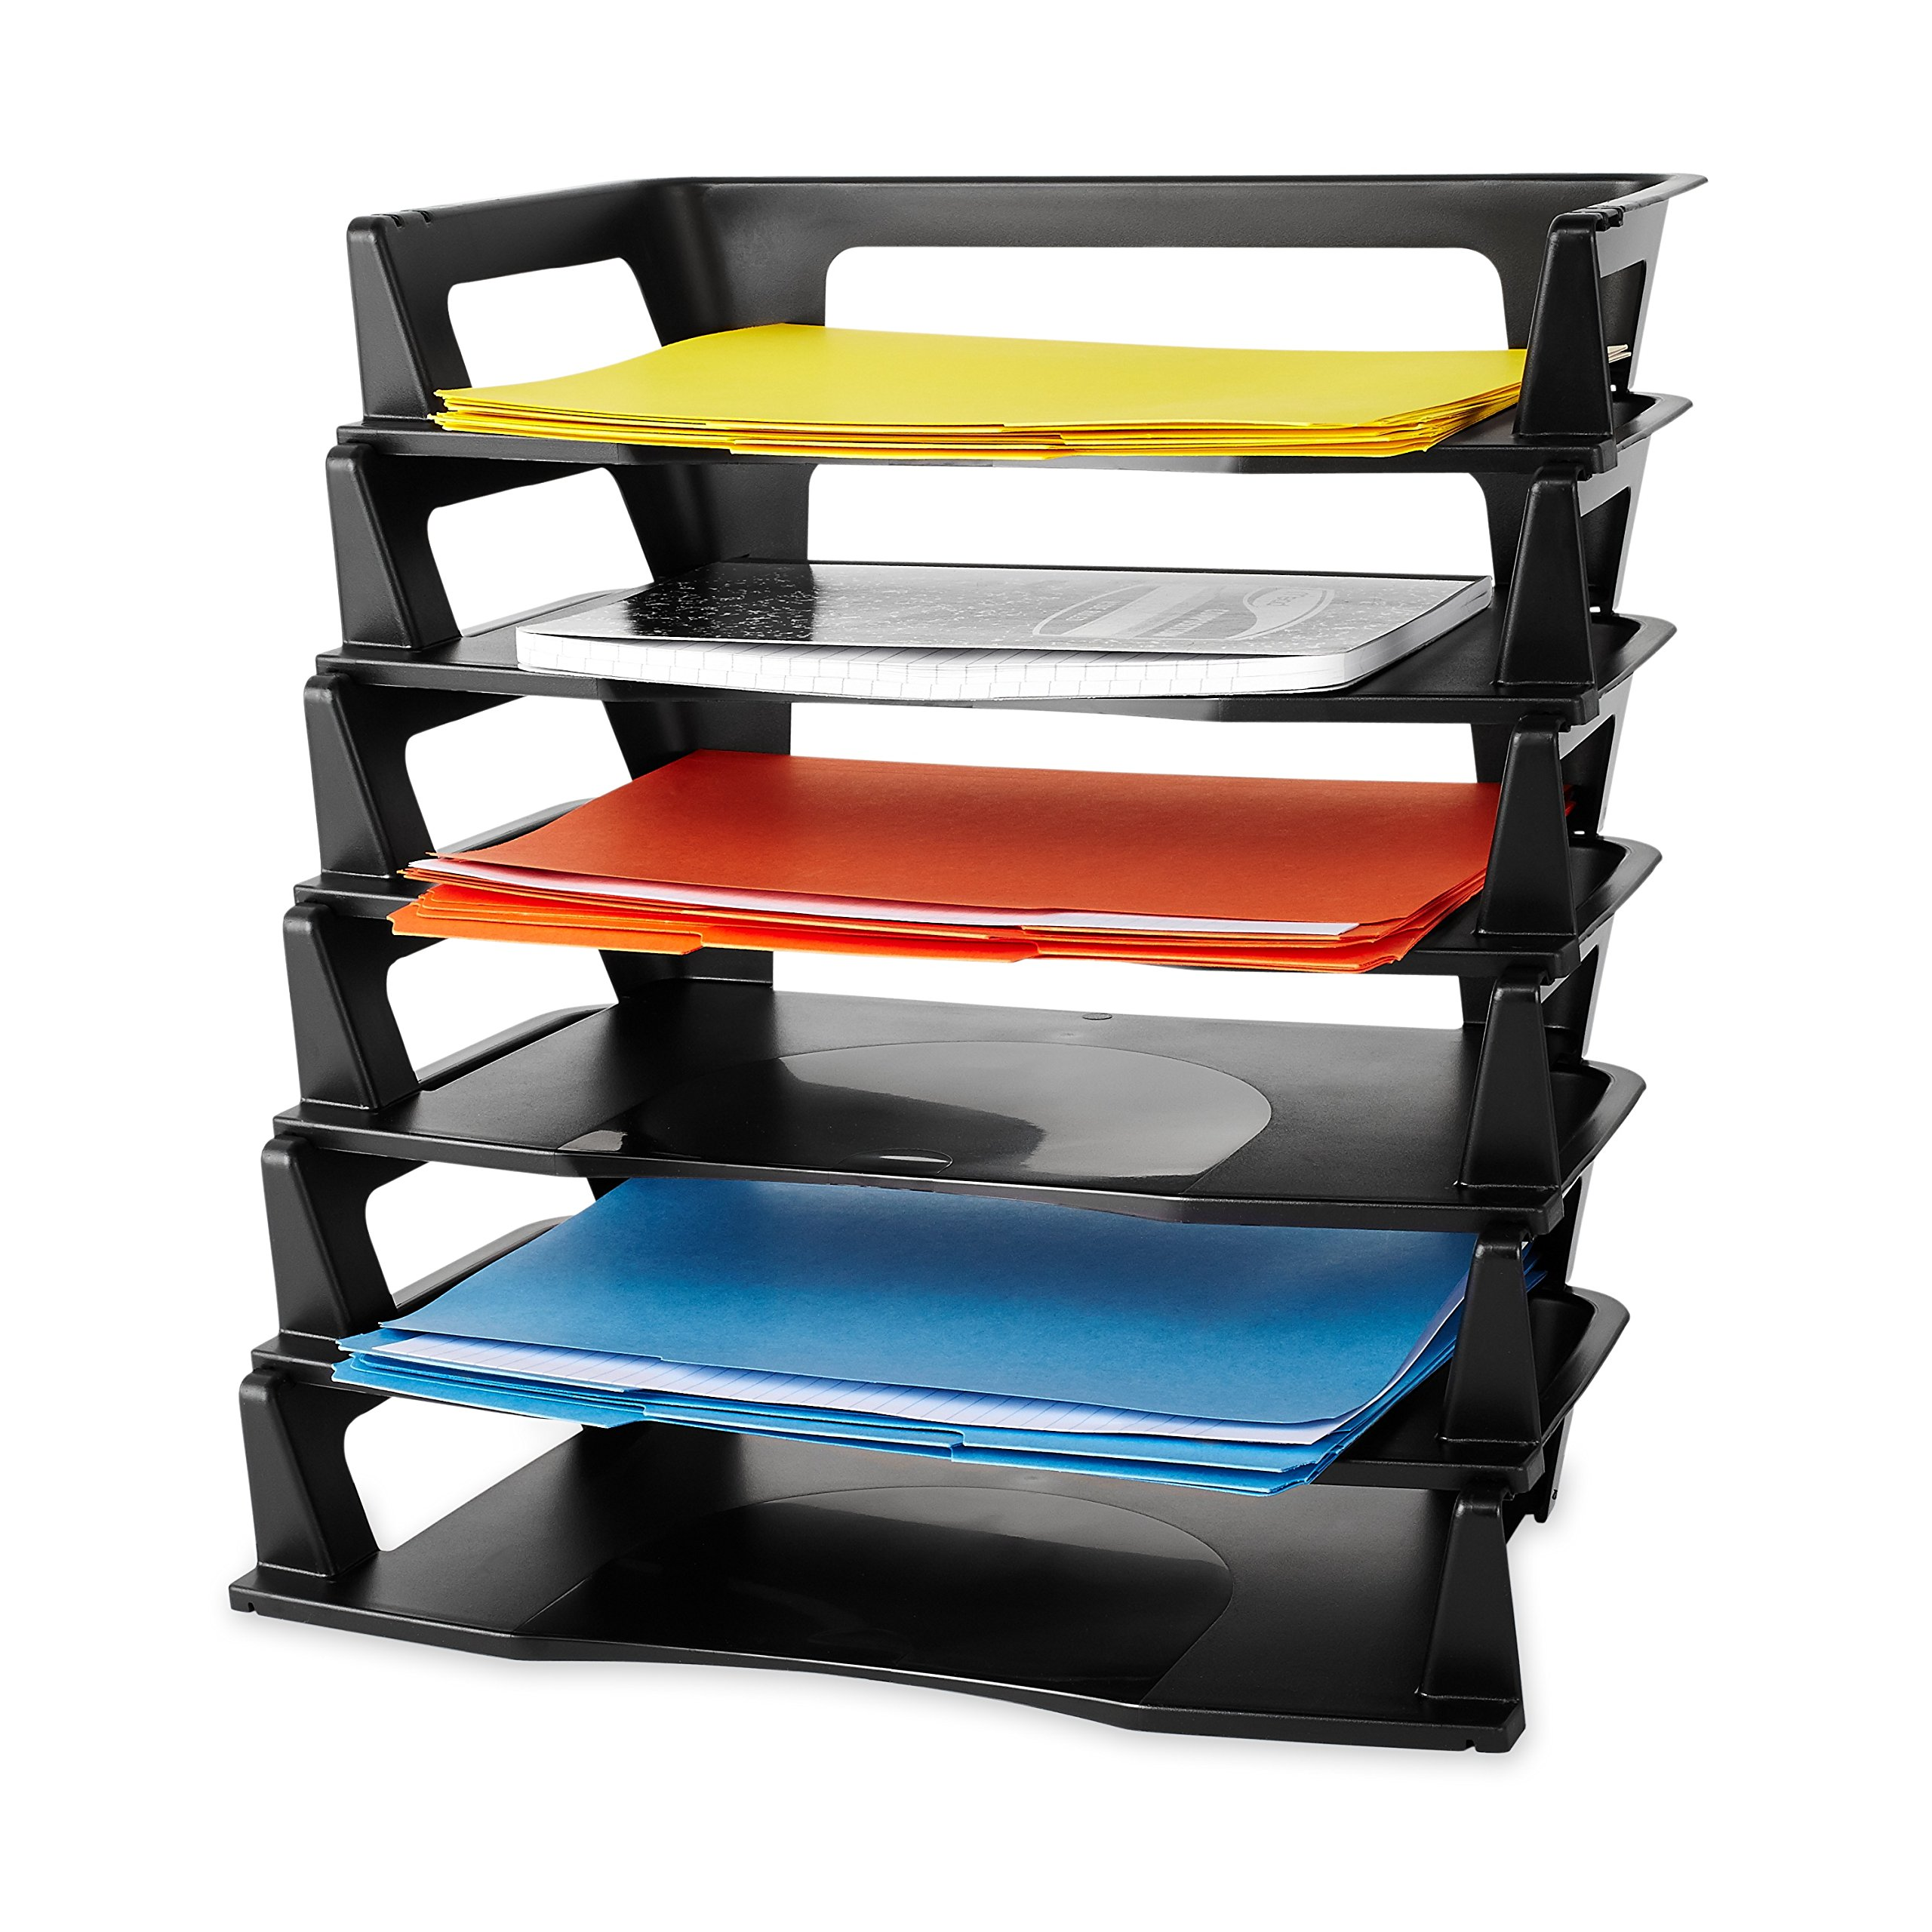 Rubbermaid Regeneration Letter Tray, Six Tier, Plastic, Black (86028) by Rubbermaid